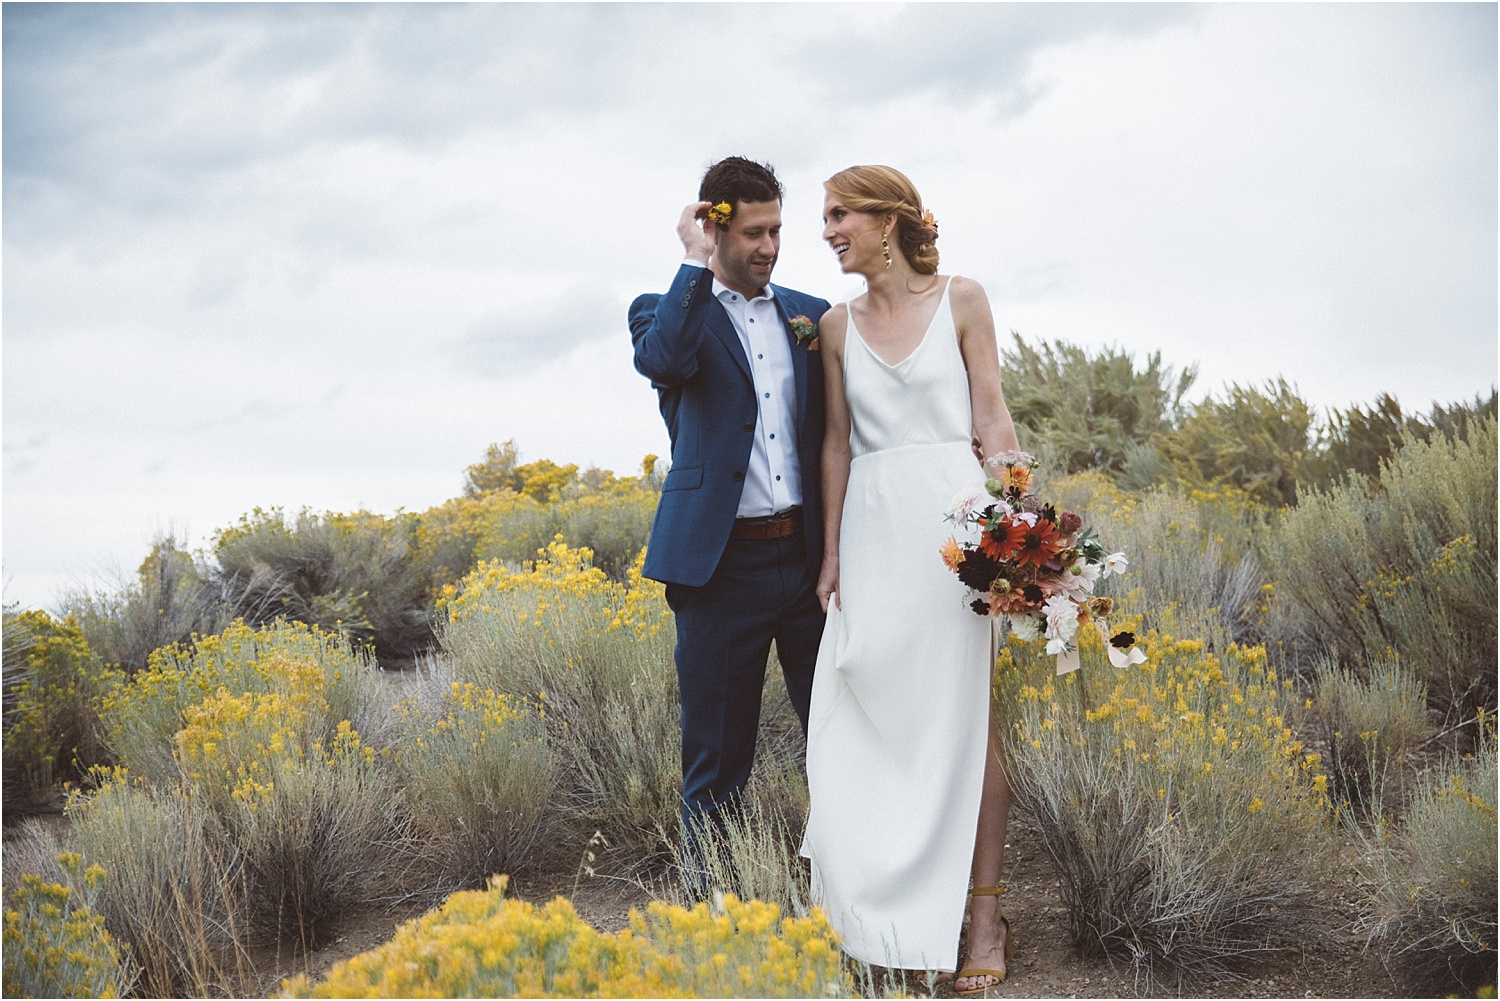 A bride and groom holding their wedding flowers at Brasada Ranch for their wedding.